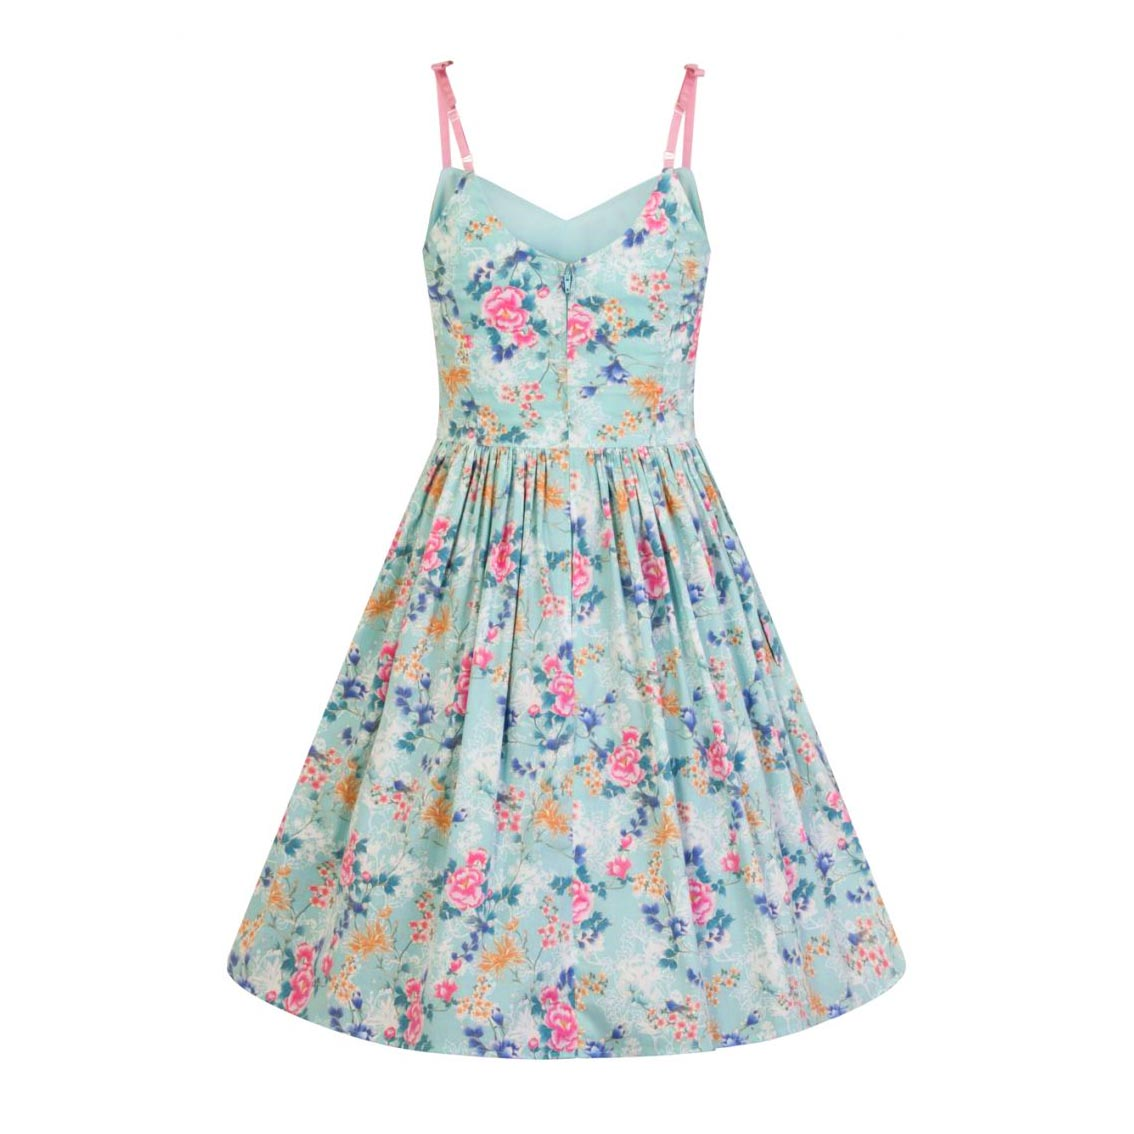 Hell-Bunny-50s-Mid-Length-Dress-Vintage-Blue-Pink-SAKURA-Flowers-Roses-All-Sizes thumbnail 20